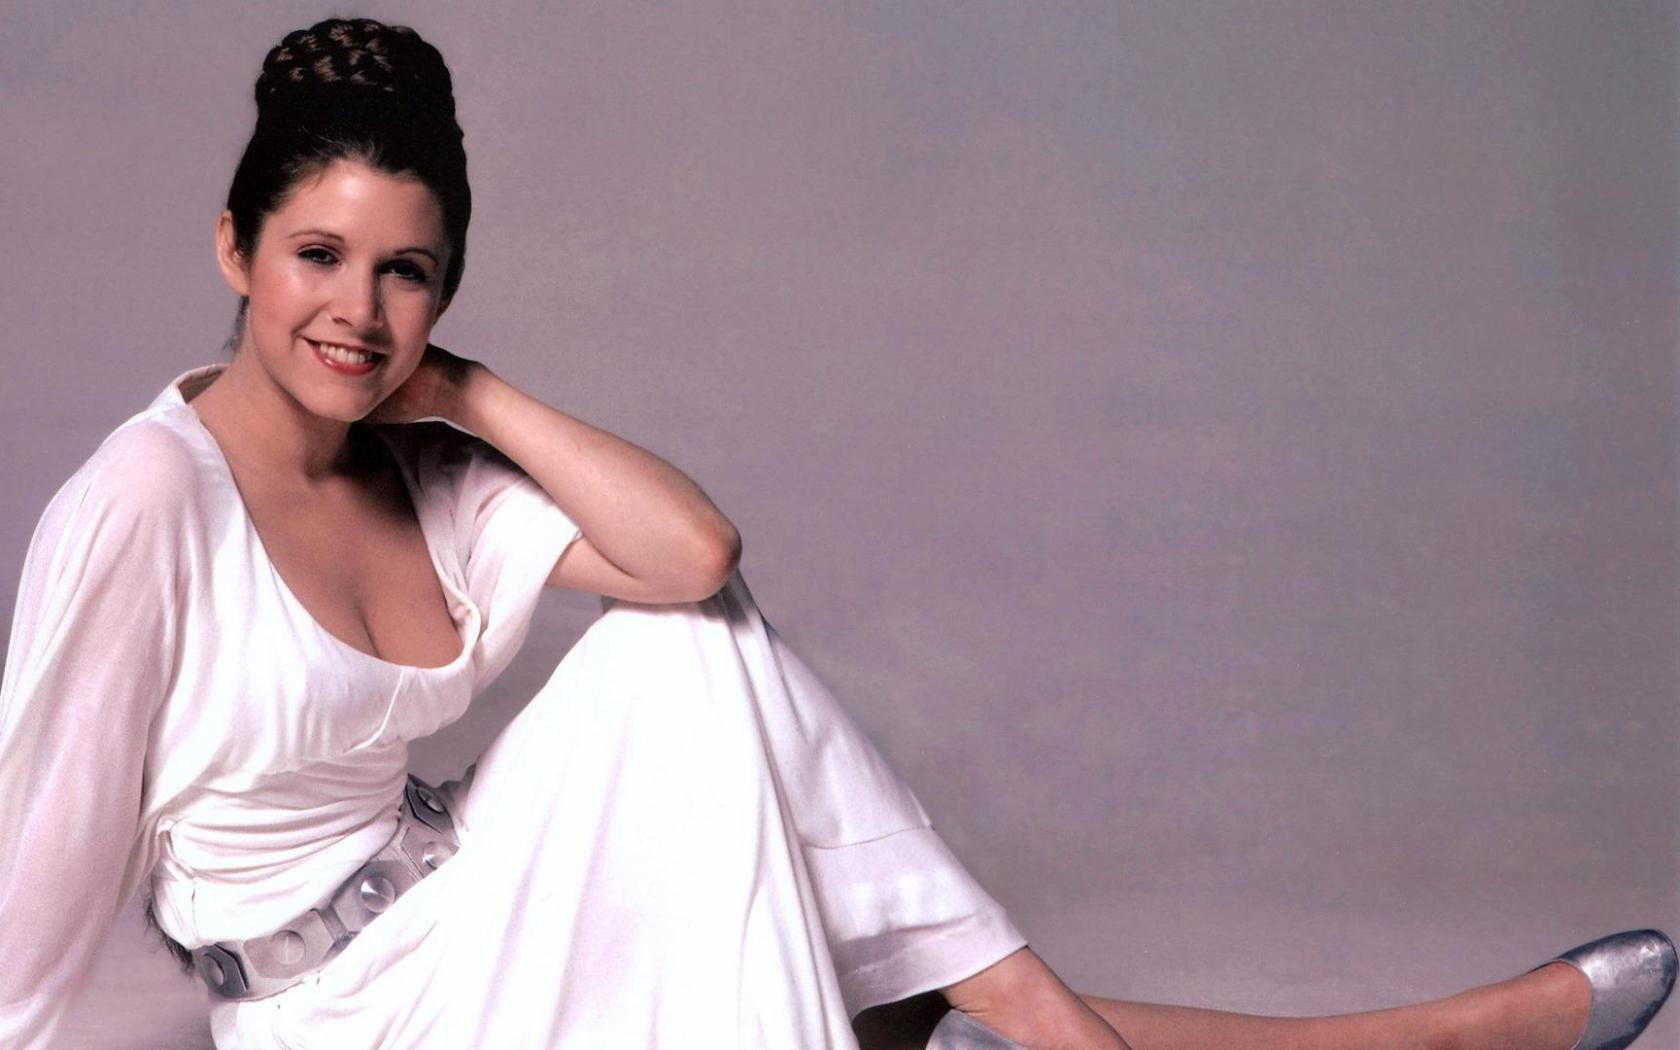 Star Wars Images RIP Carrie Fisher HD Wallpaper And Background Photos